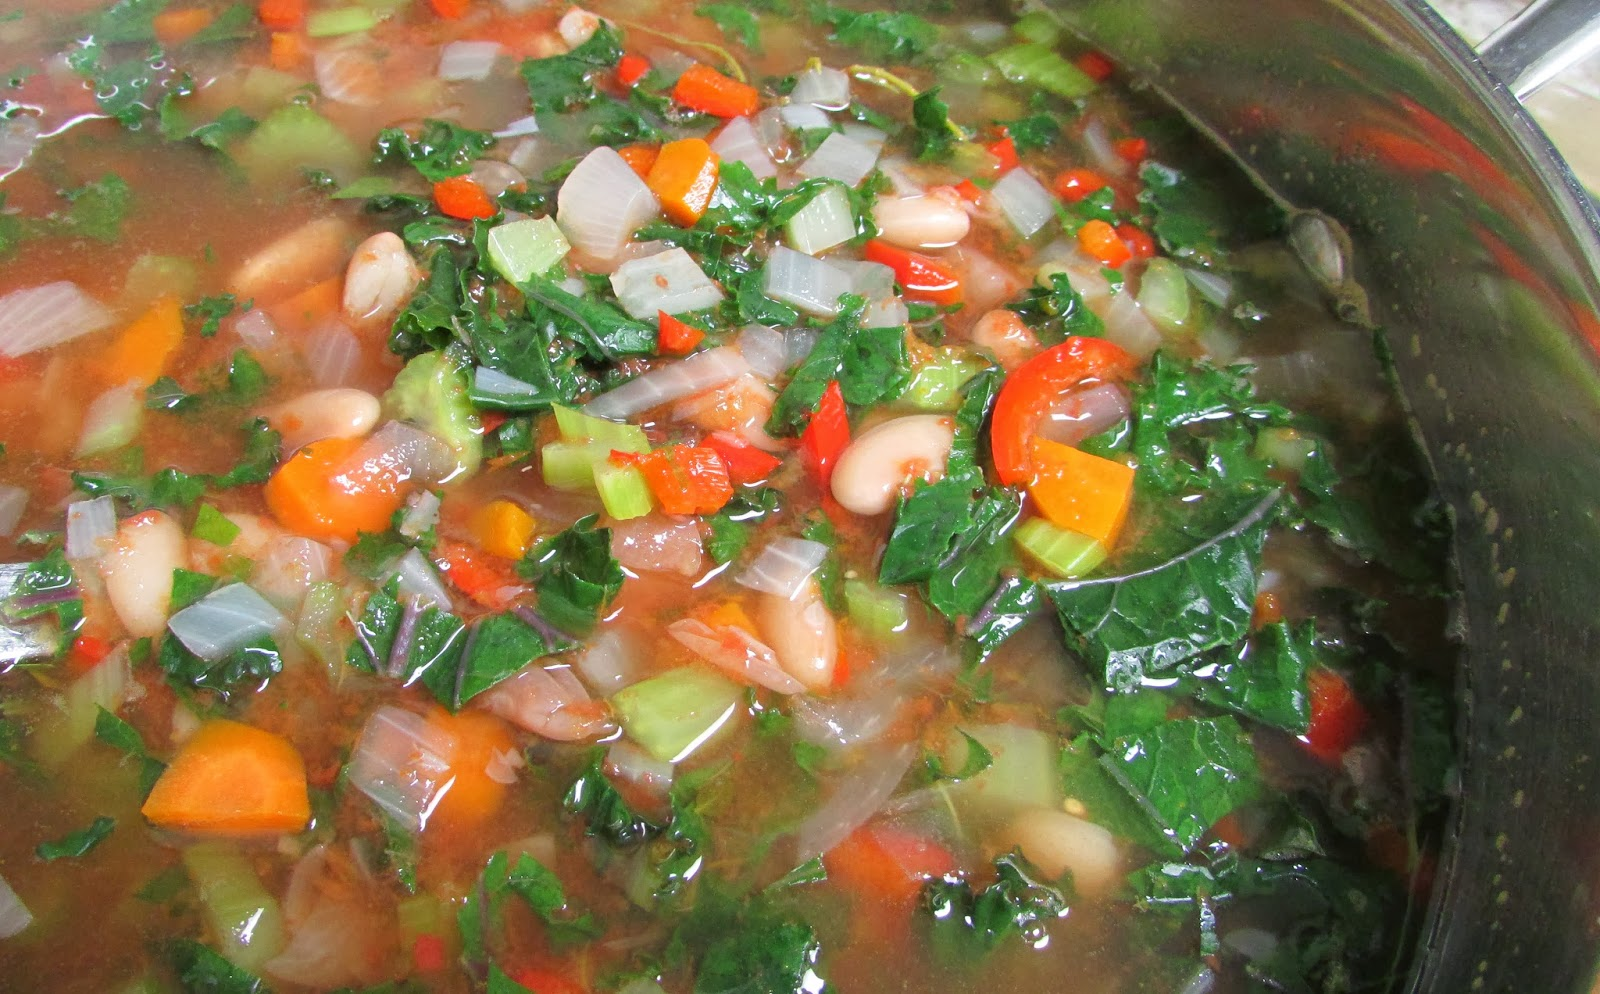 ... Rue, Please: Peruano Bean, Red Kale and Tomato Soup with Parsley Pesto